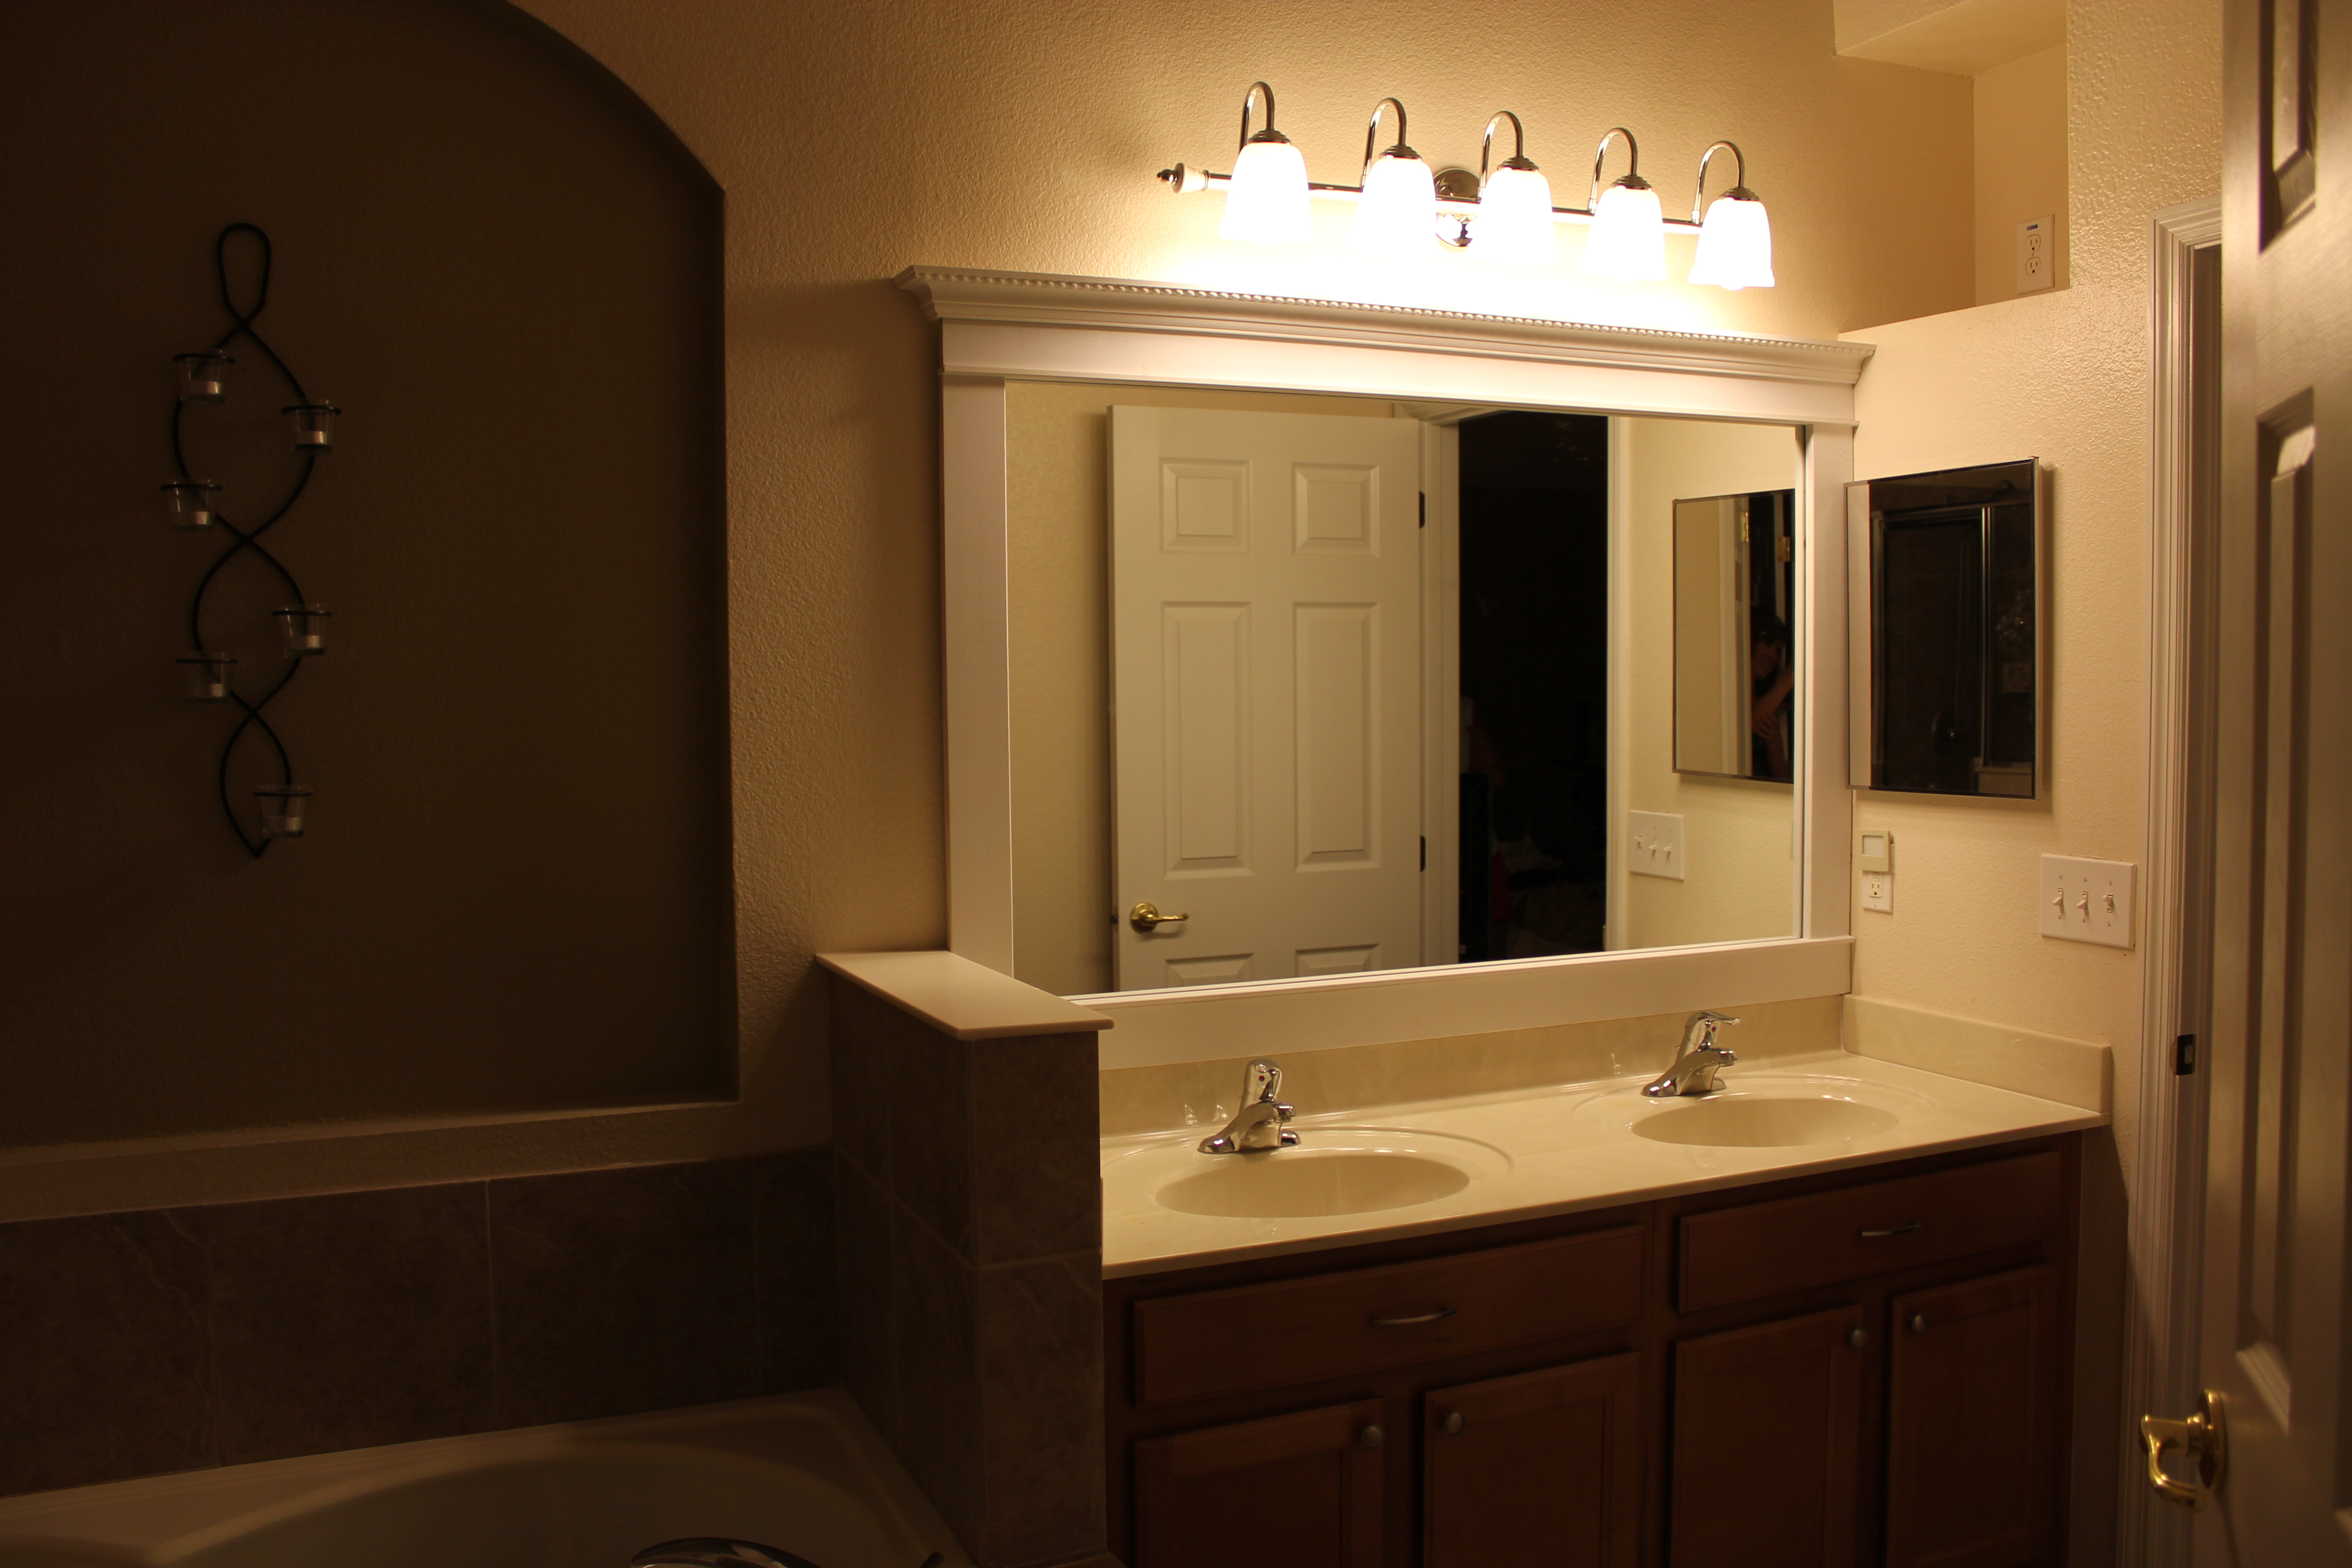 Original Bathroom Lighting Ideas Over Mirror Eyagcicom - Modern bathroom lights over mirror